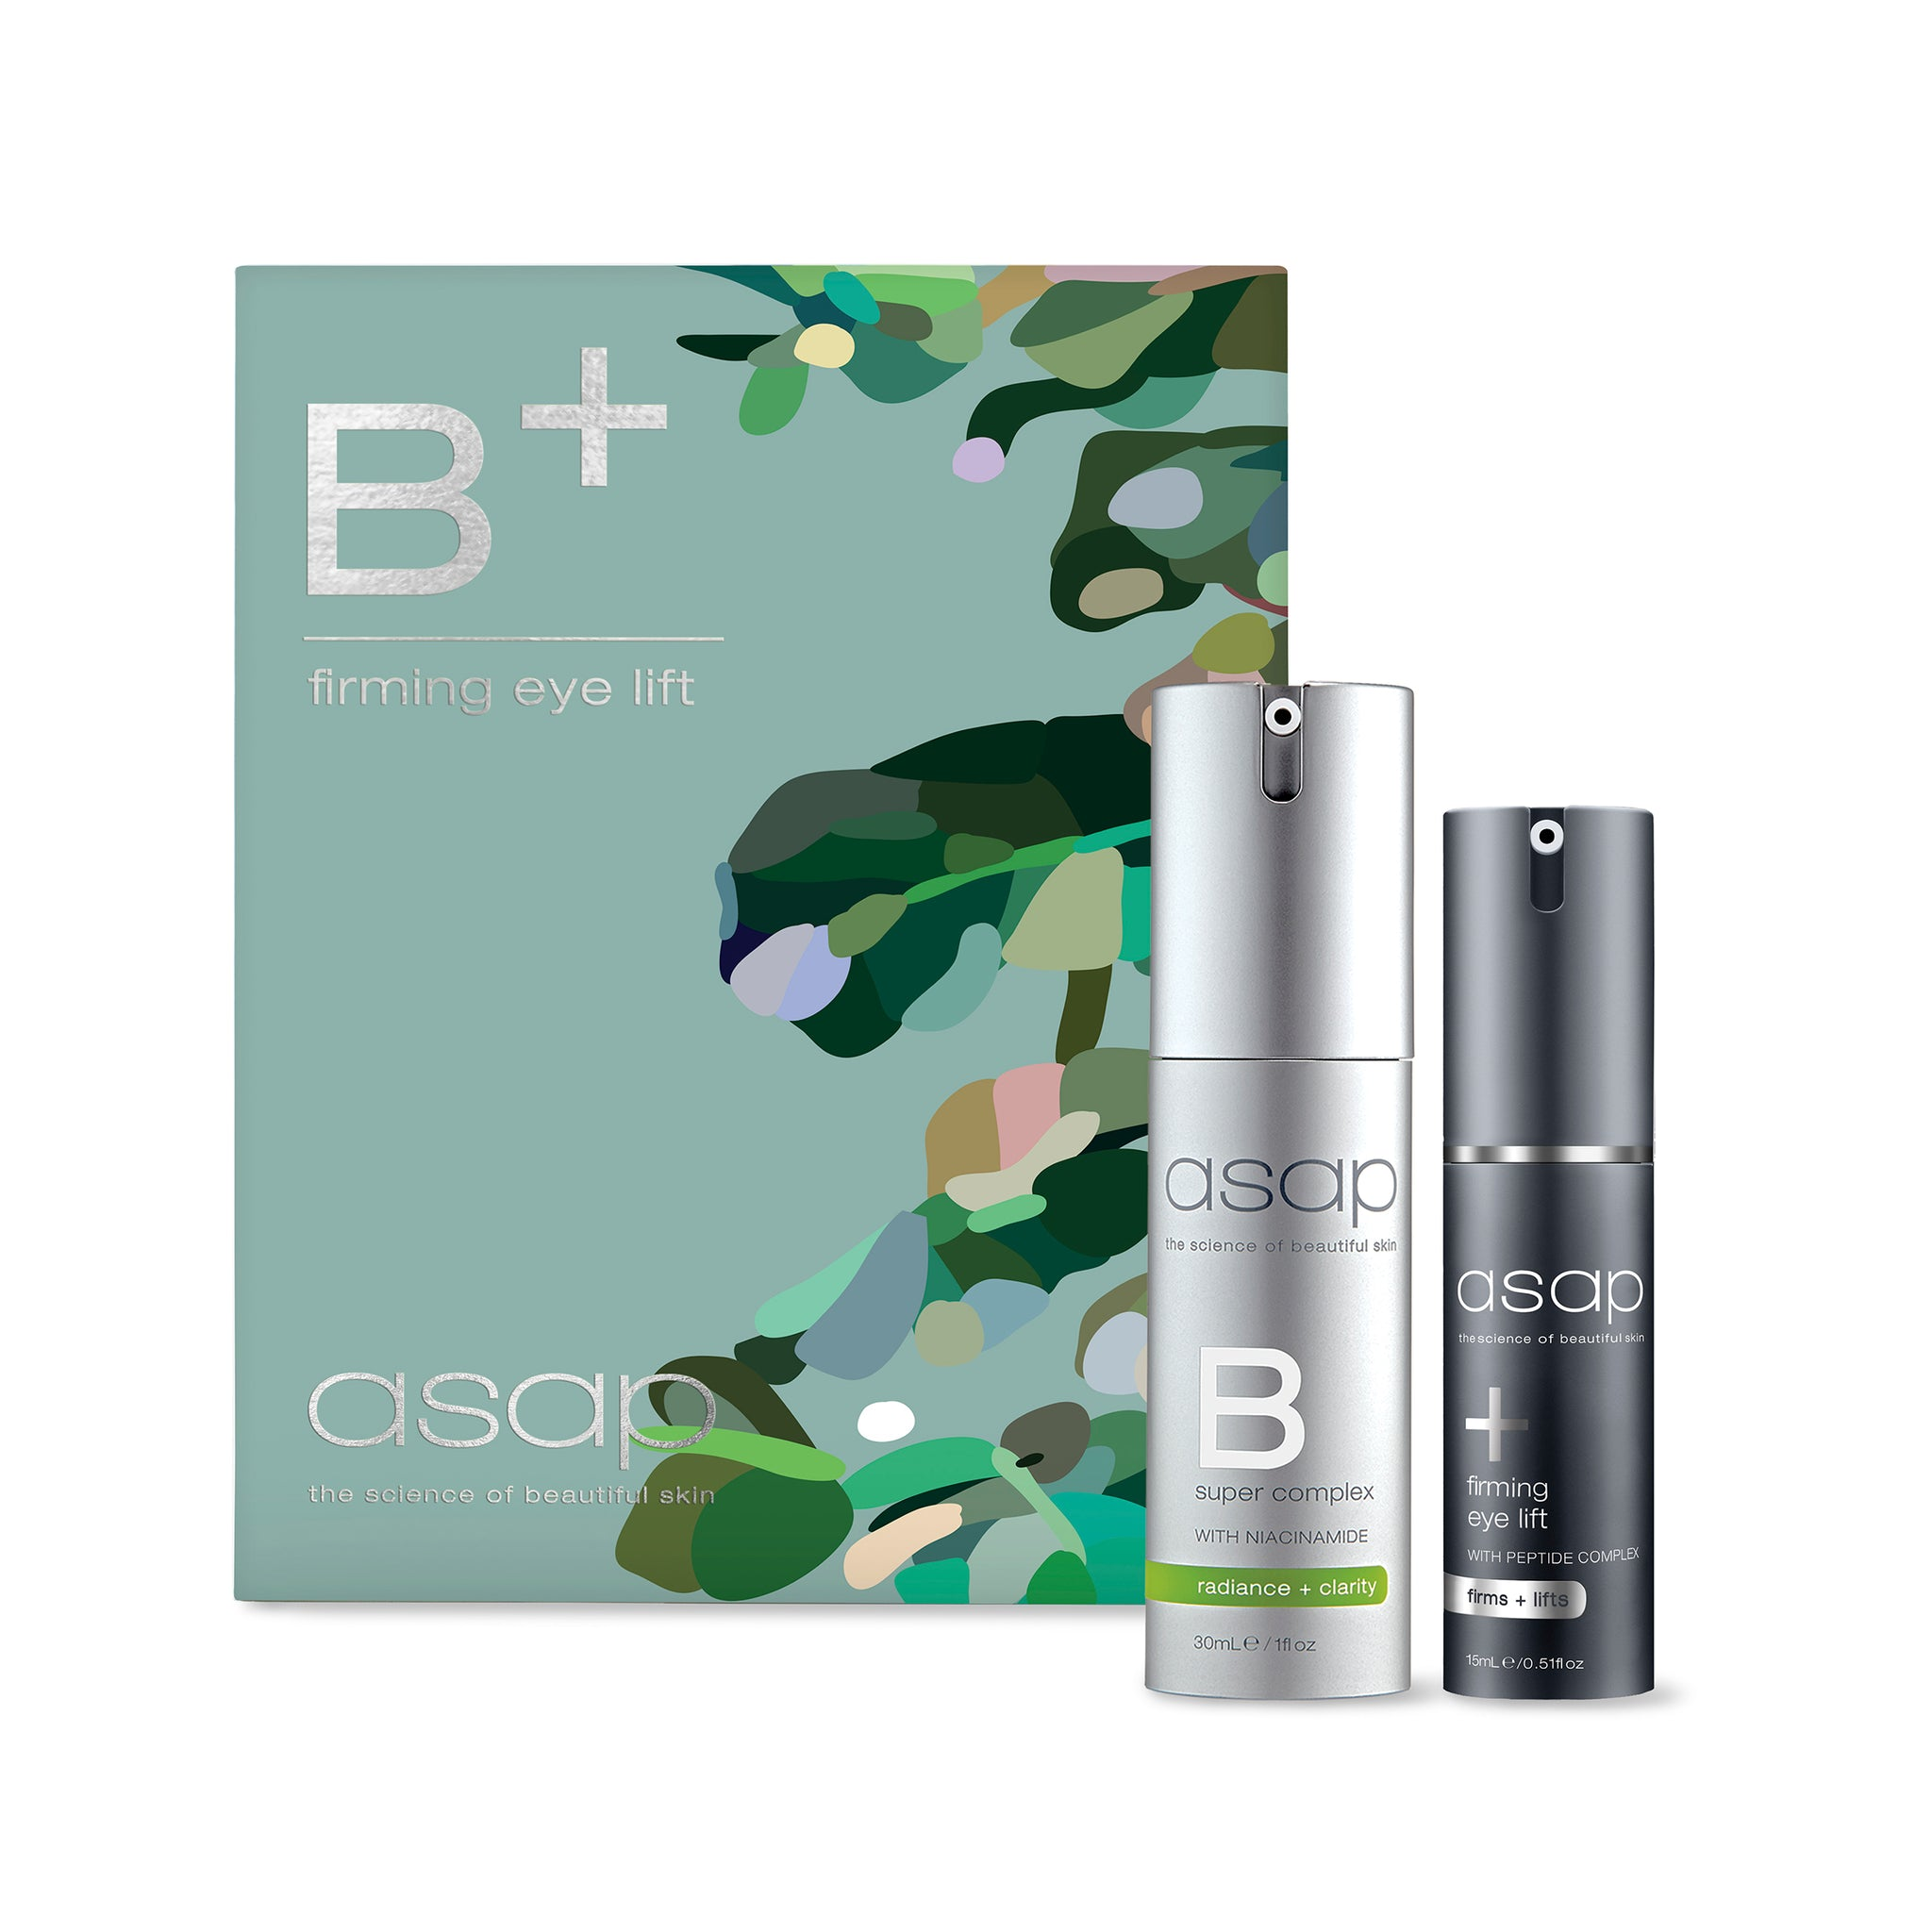 ASAP B+ firming eye lift Gift Set